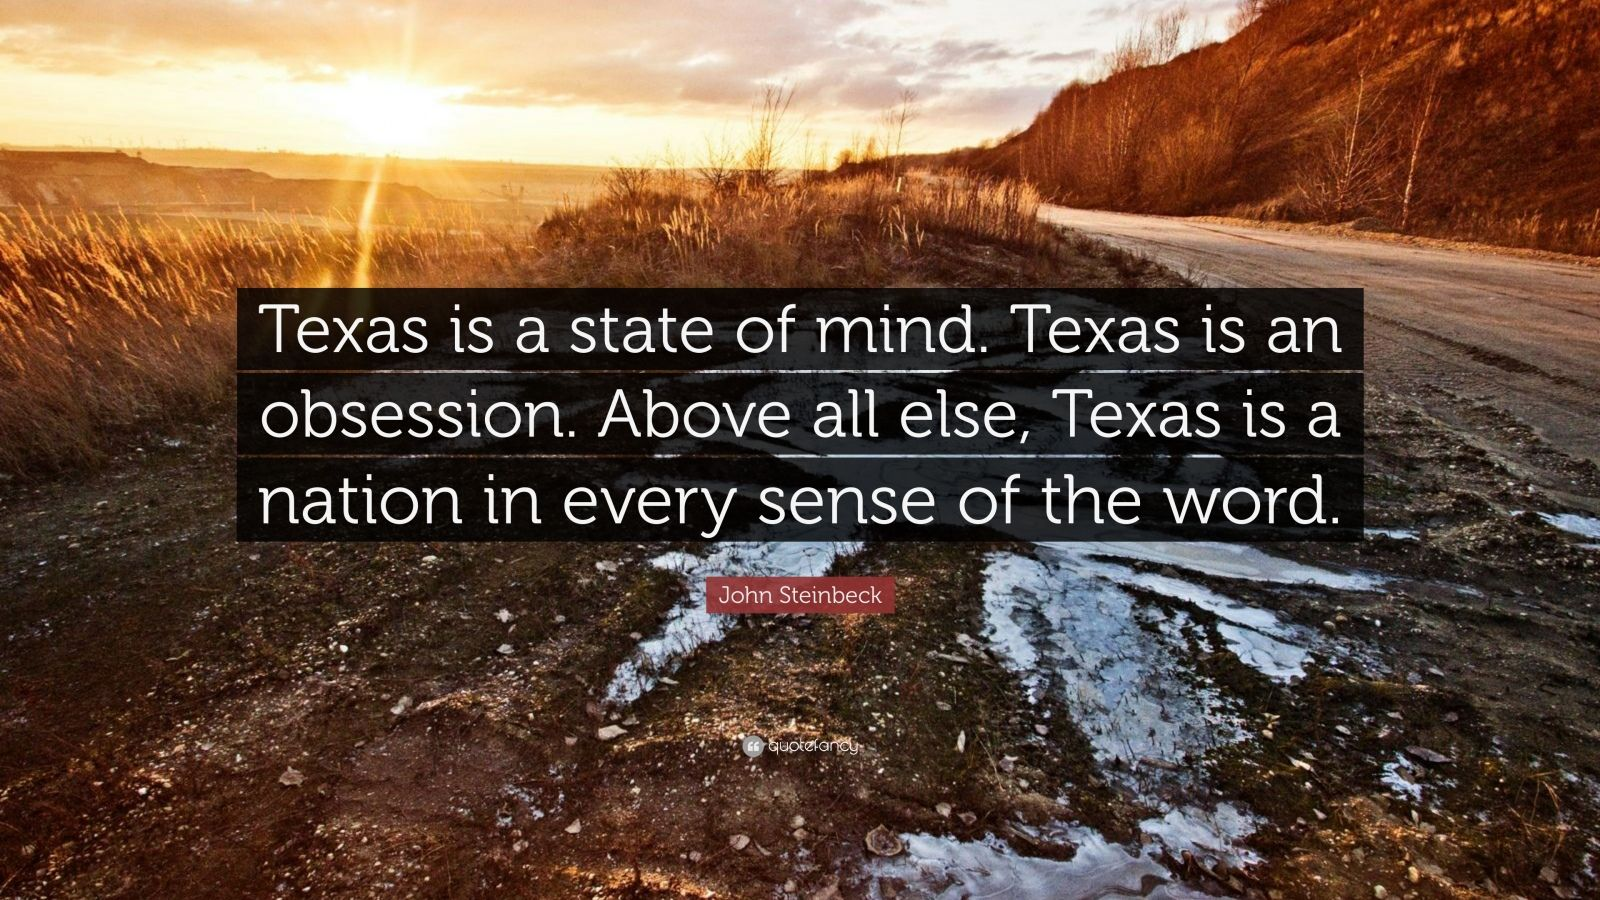 """John Steinbeck Quote: """"Texas is a state of mind. Texas is an obsession. Above all else, Texas is a nation in every sense of the word."""""""